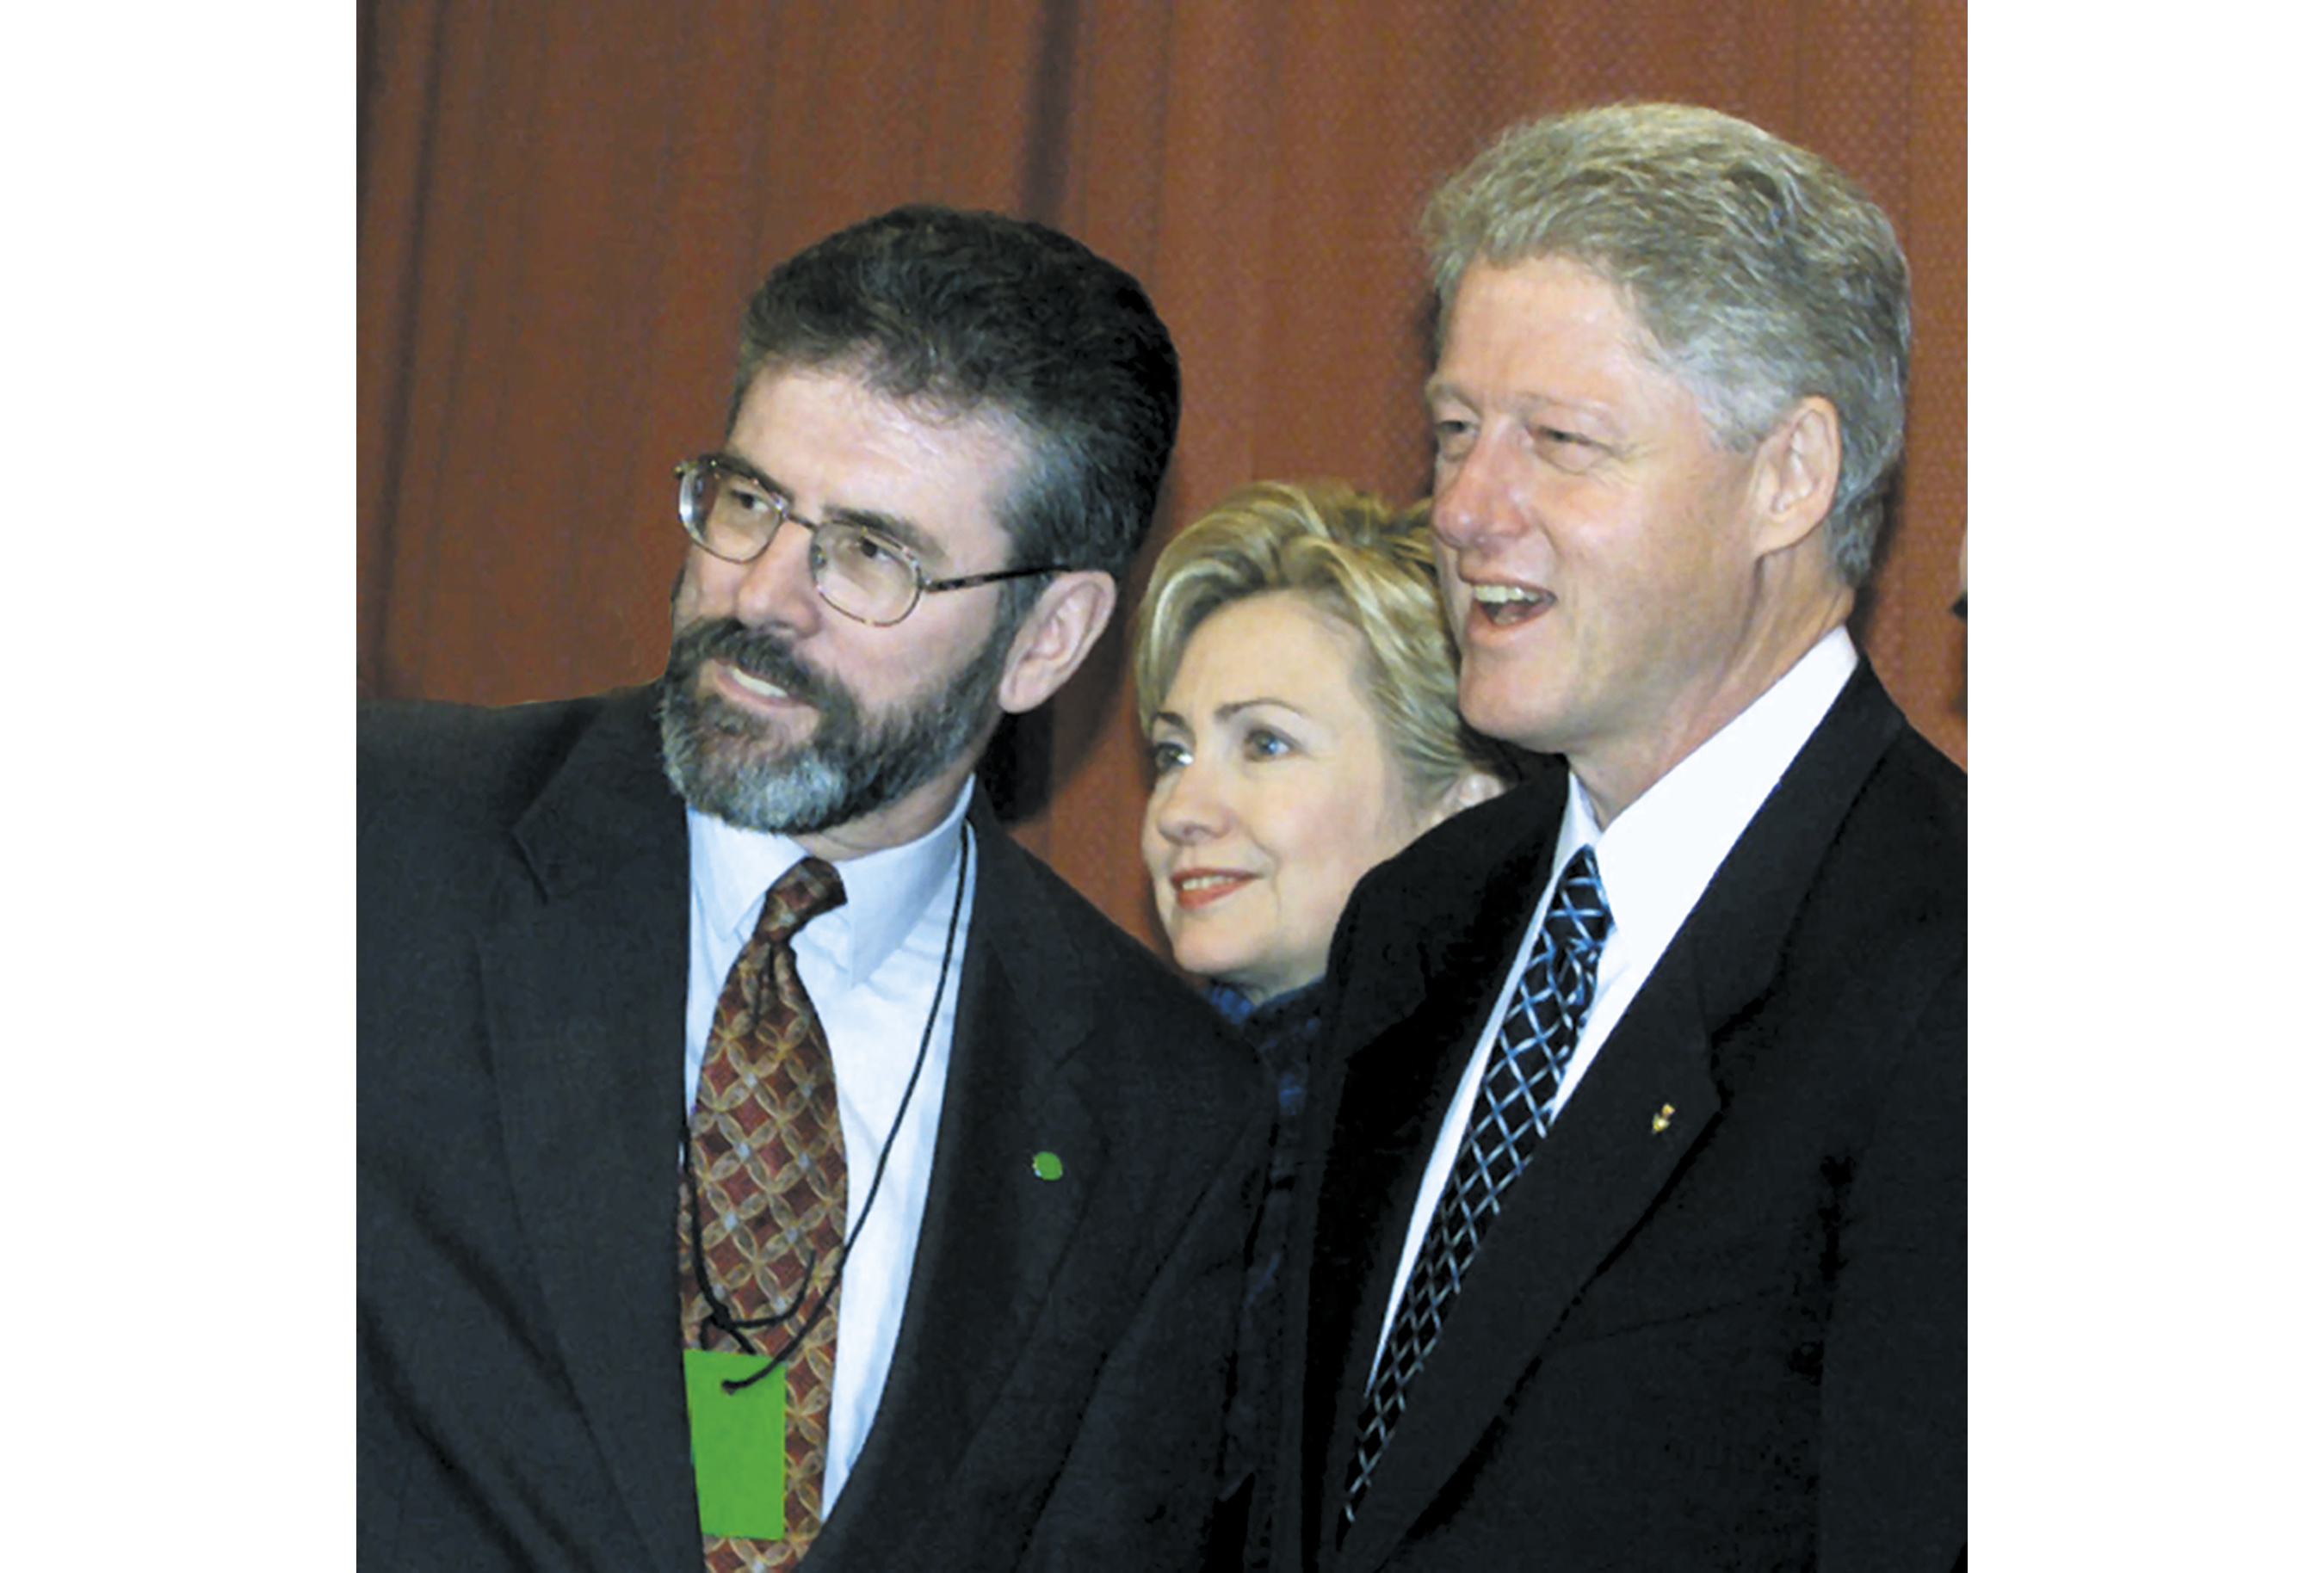 President Clinton and Irish Prime Minister Bertie Ahern, right, talk with Gerry Adams, president of Sinn Fein, left, at a reception at the Guinness brewery in Dublin. Clinton is on the first day of a three-day visit. First lady Hillary Rodham Clinton is standing in the background. (AP Photo/Ron Edmonds)